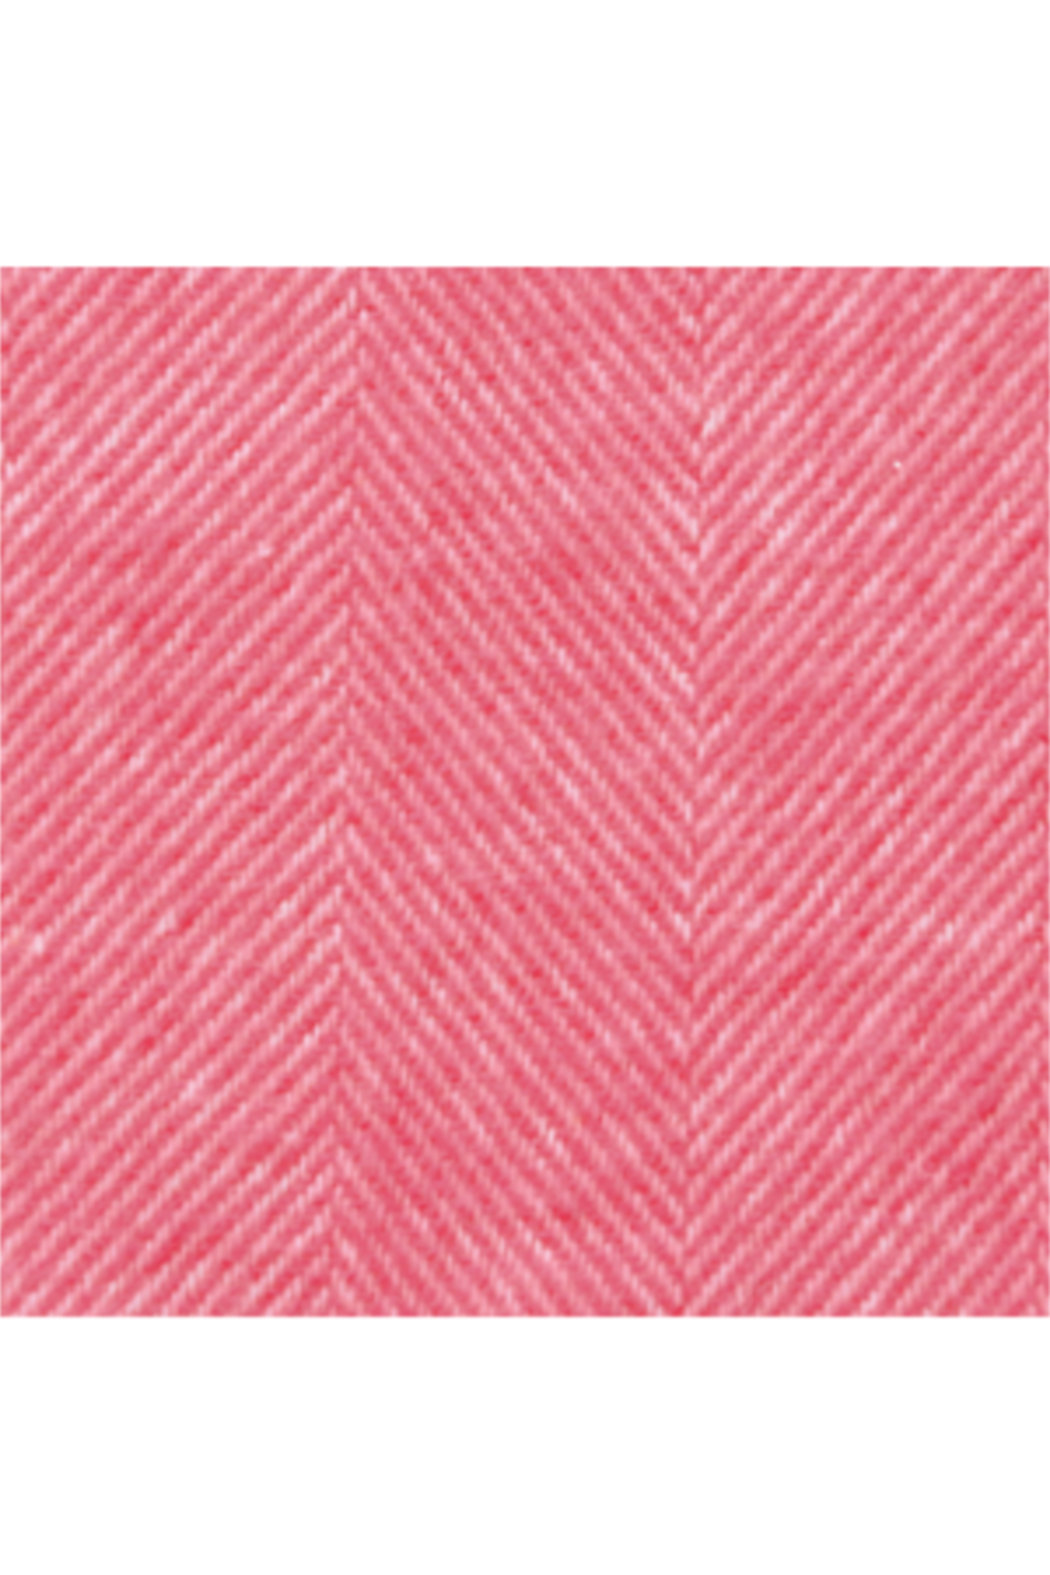 The Birds Nest CORAL PINK ITALIAN HERRINGBONE THROW - Front Full Image